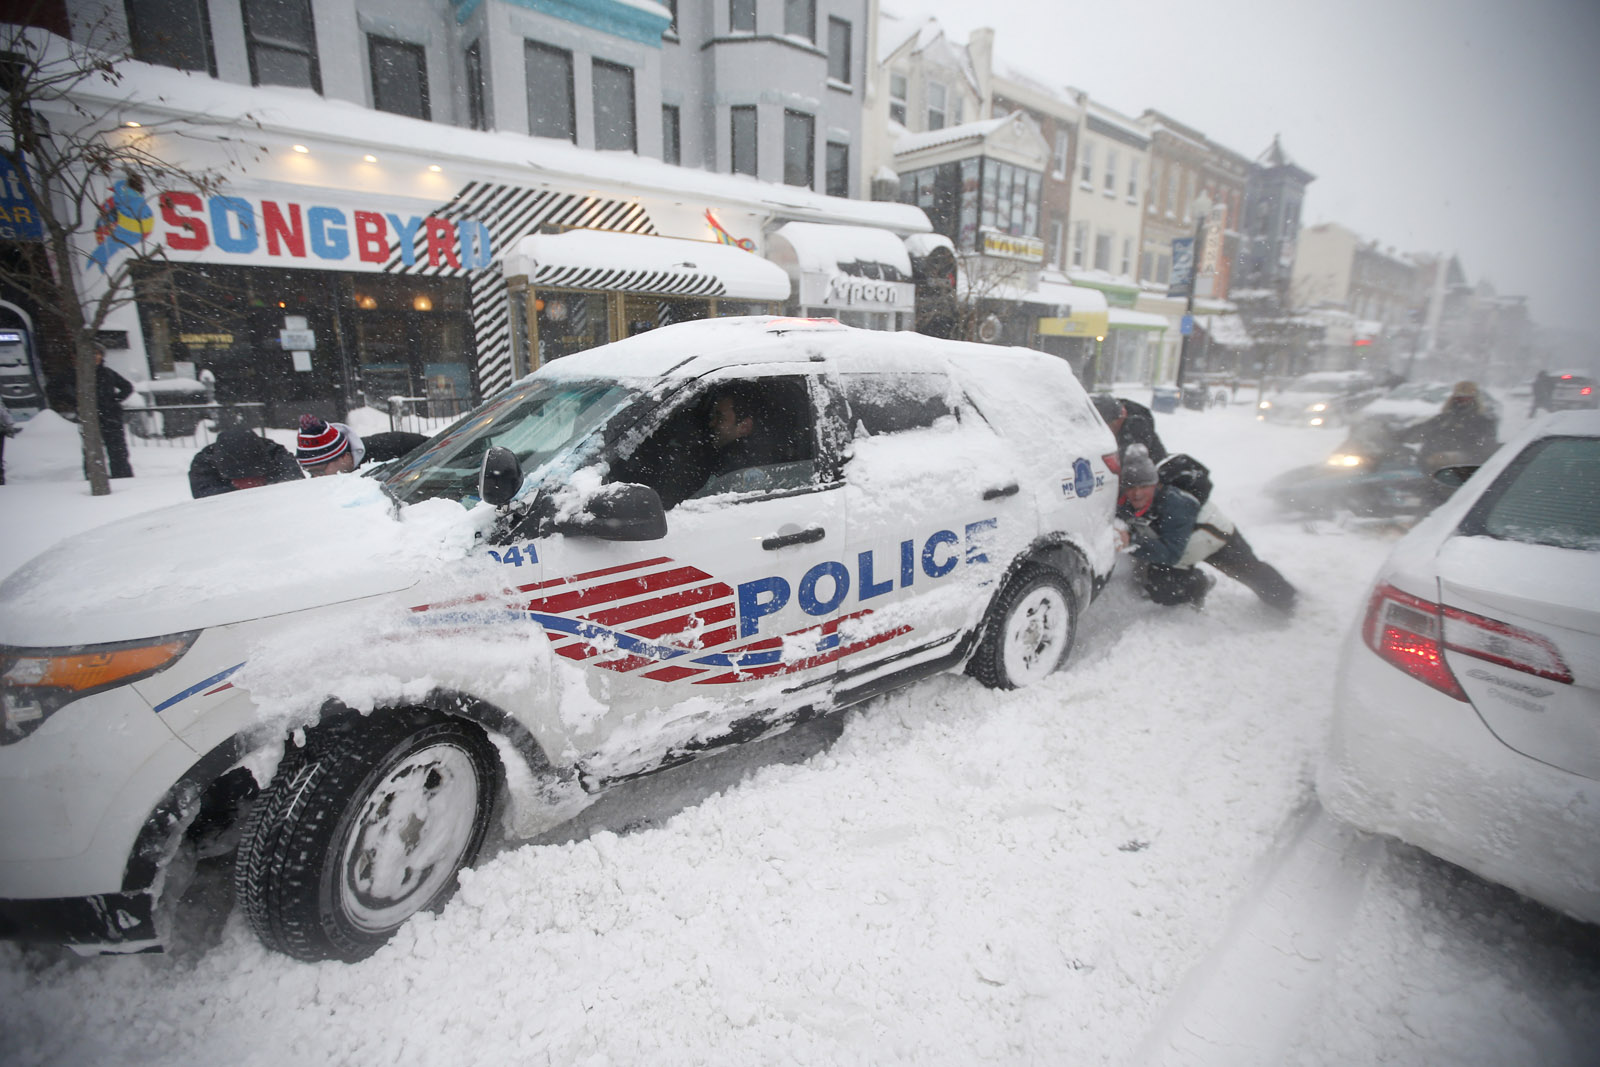 Police pitching in to clear snow from D.C. streets